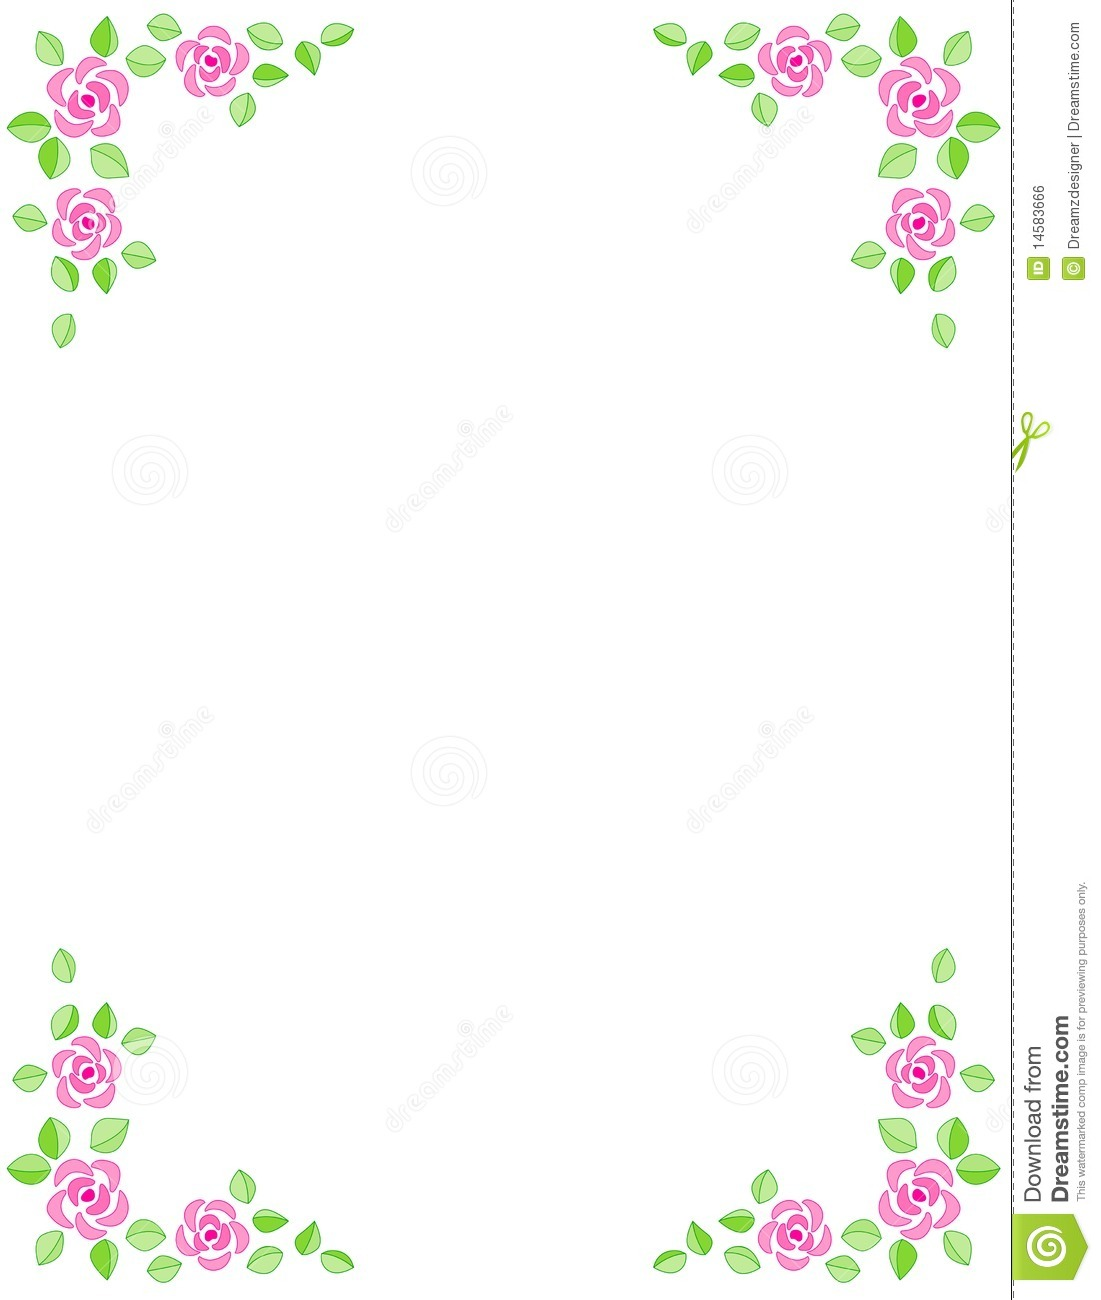 Beautiful clip art borders freeuse library Pink Birthday Border Clipart - Clipart Kid freeuse library